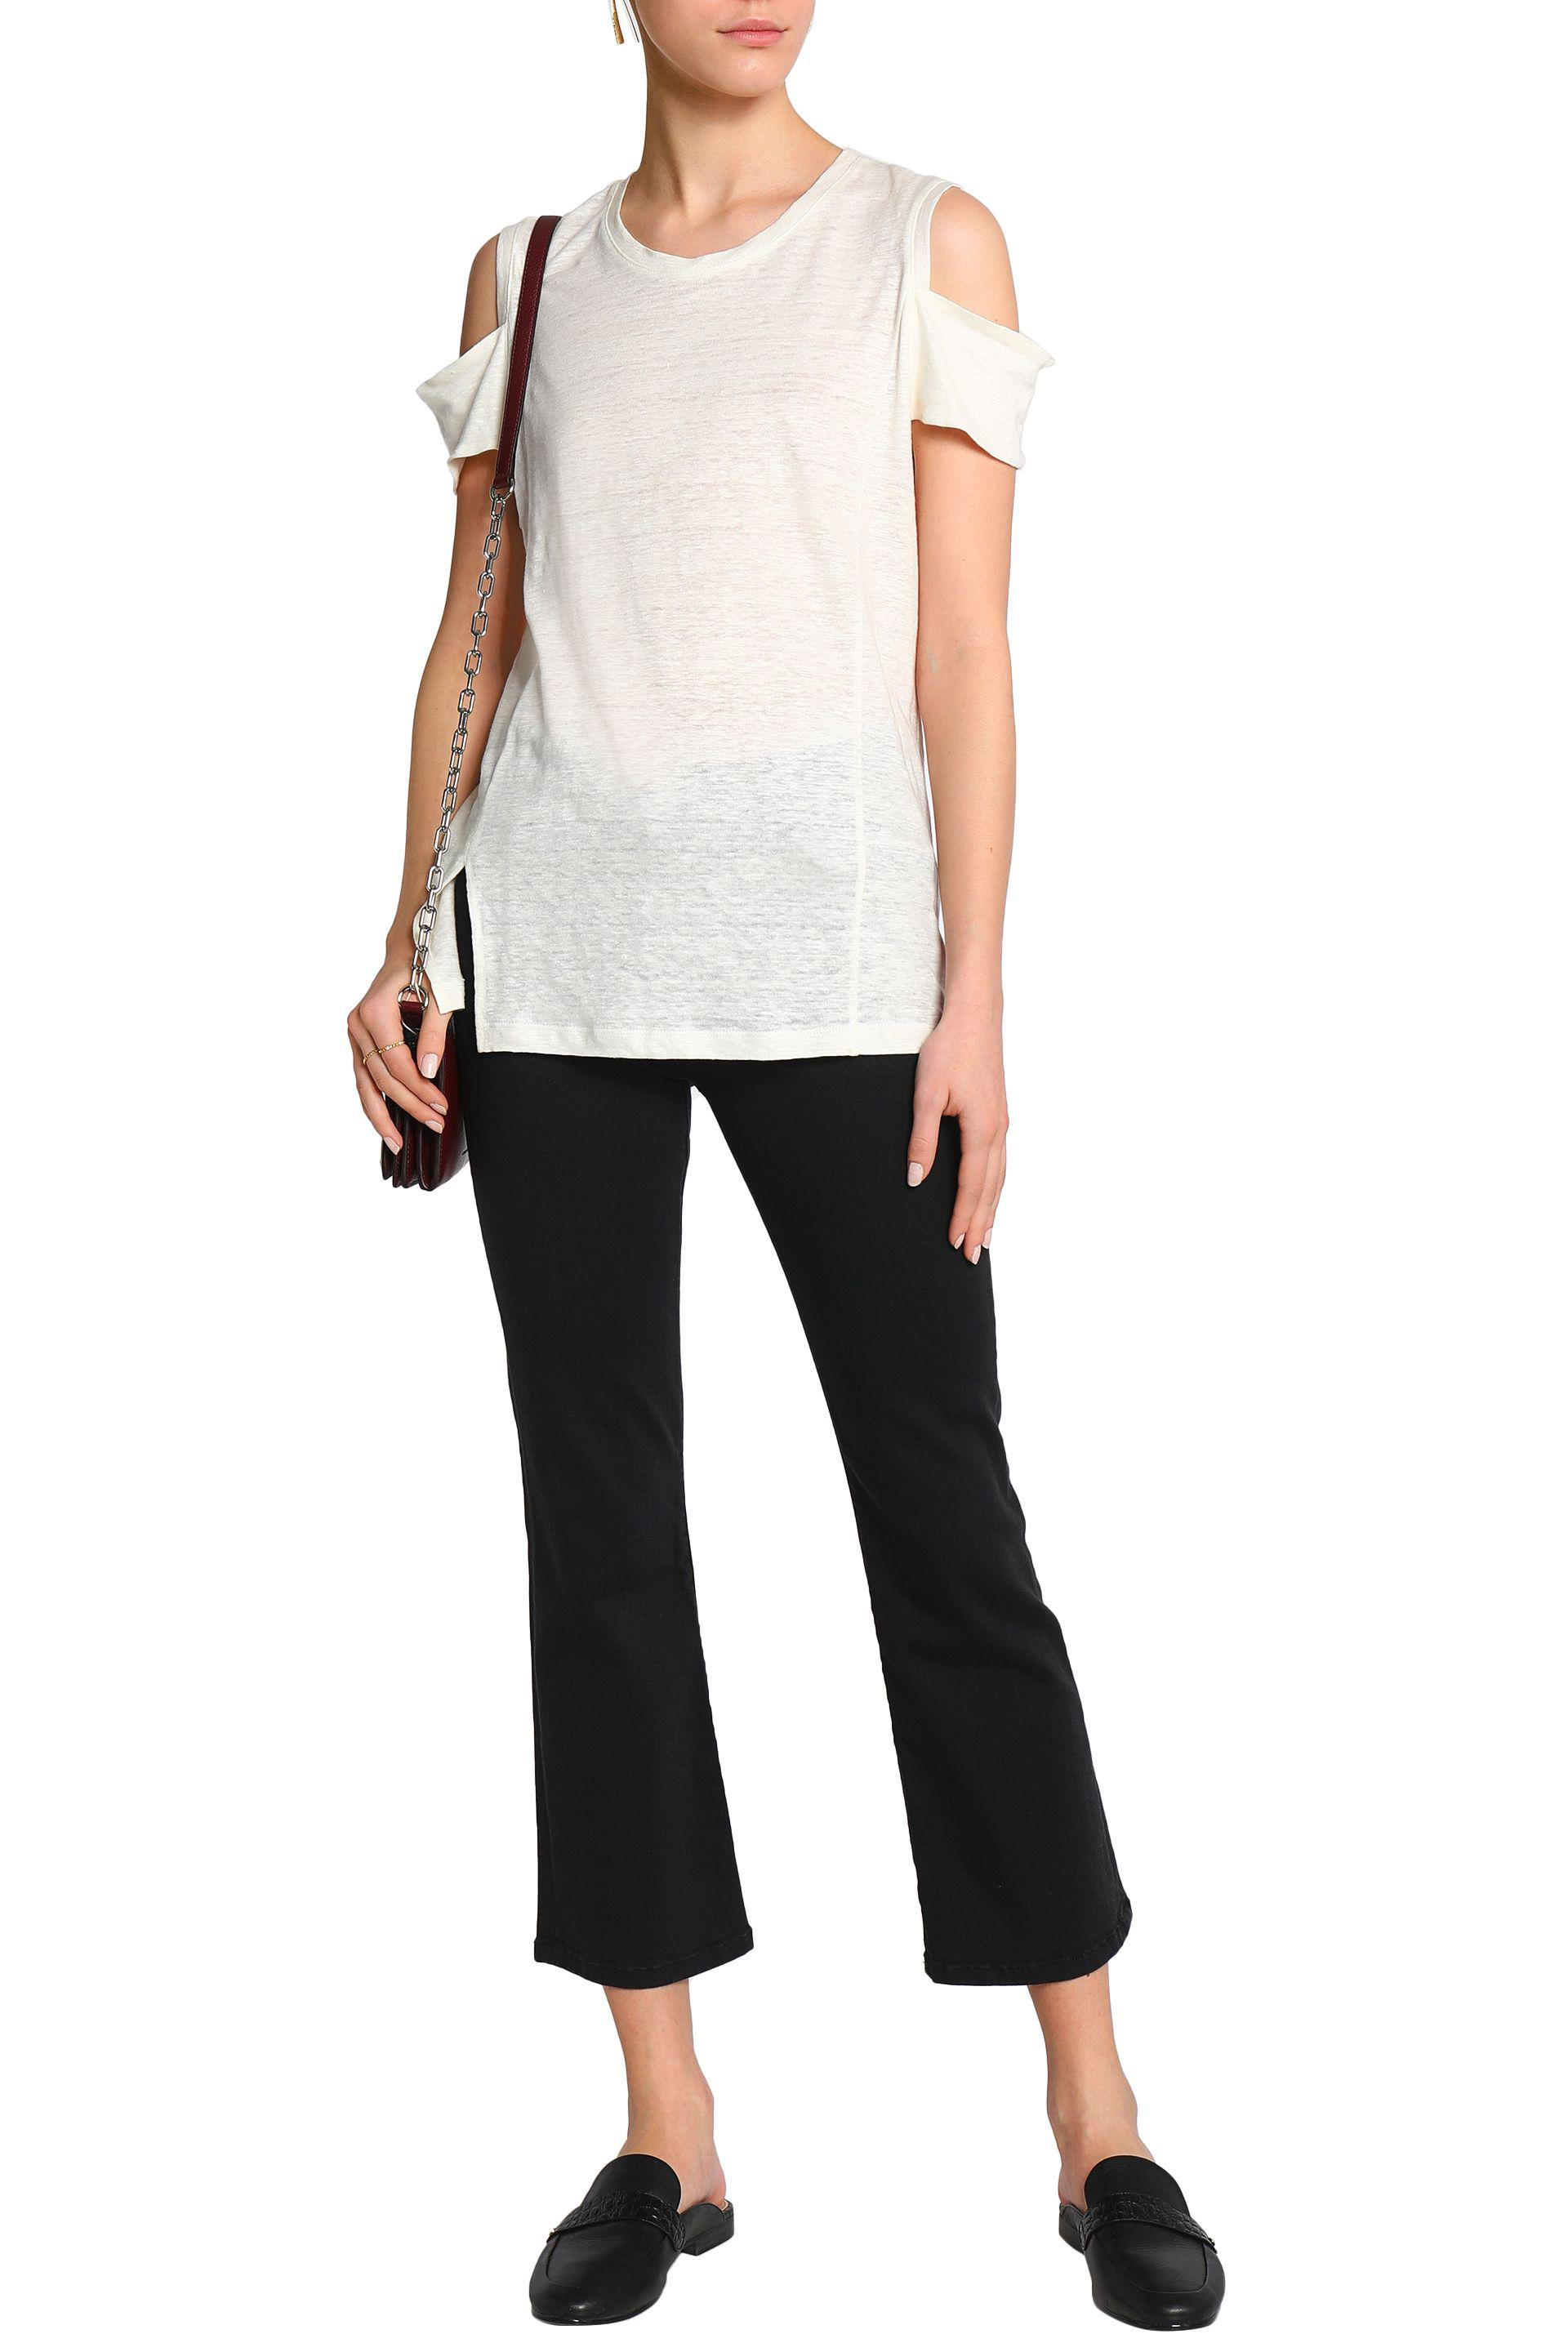 Halston Heritage Woman Cold-shoulder Slub Linen-jersey Top Ivory Size XL Halston Heritage Cheap For Sale Free Shipping Deals With Mastercard Cheap Online Buy Cheap Websites Low Price Fee Shipping For Sale 9yMscgSrLm